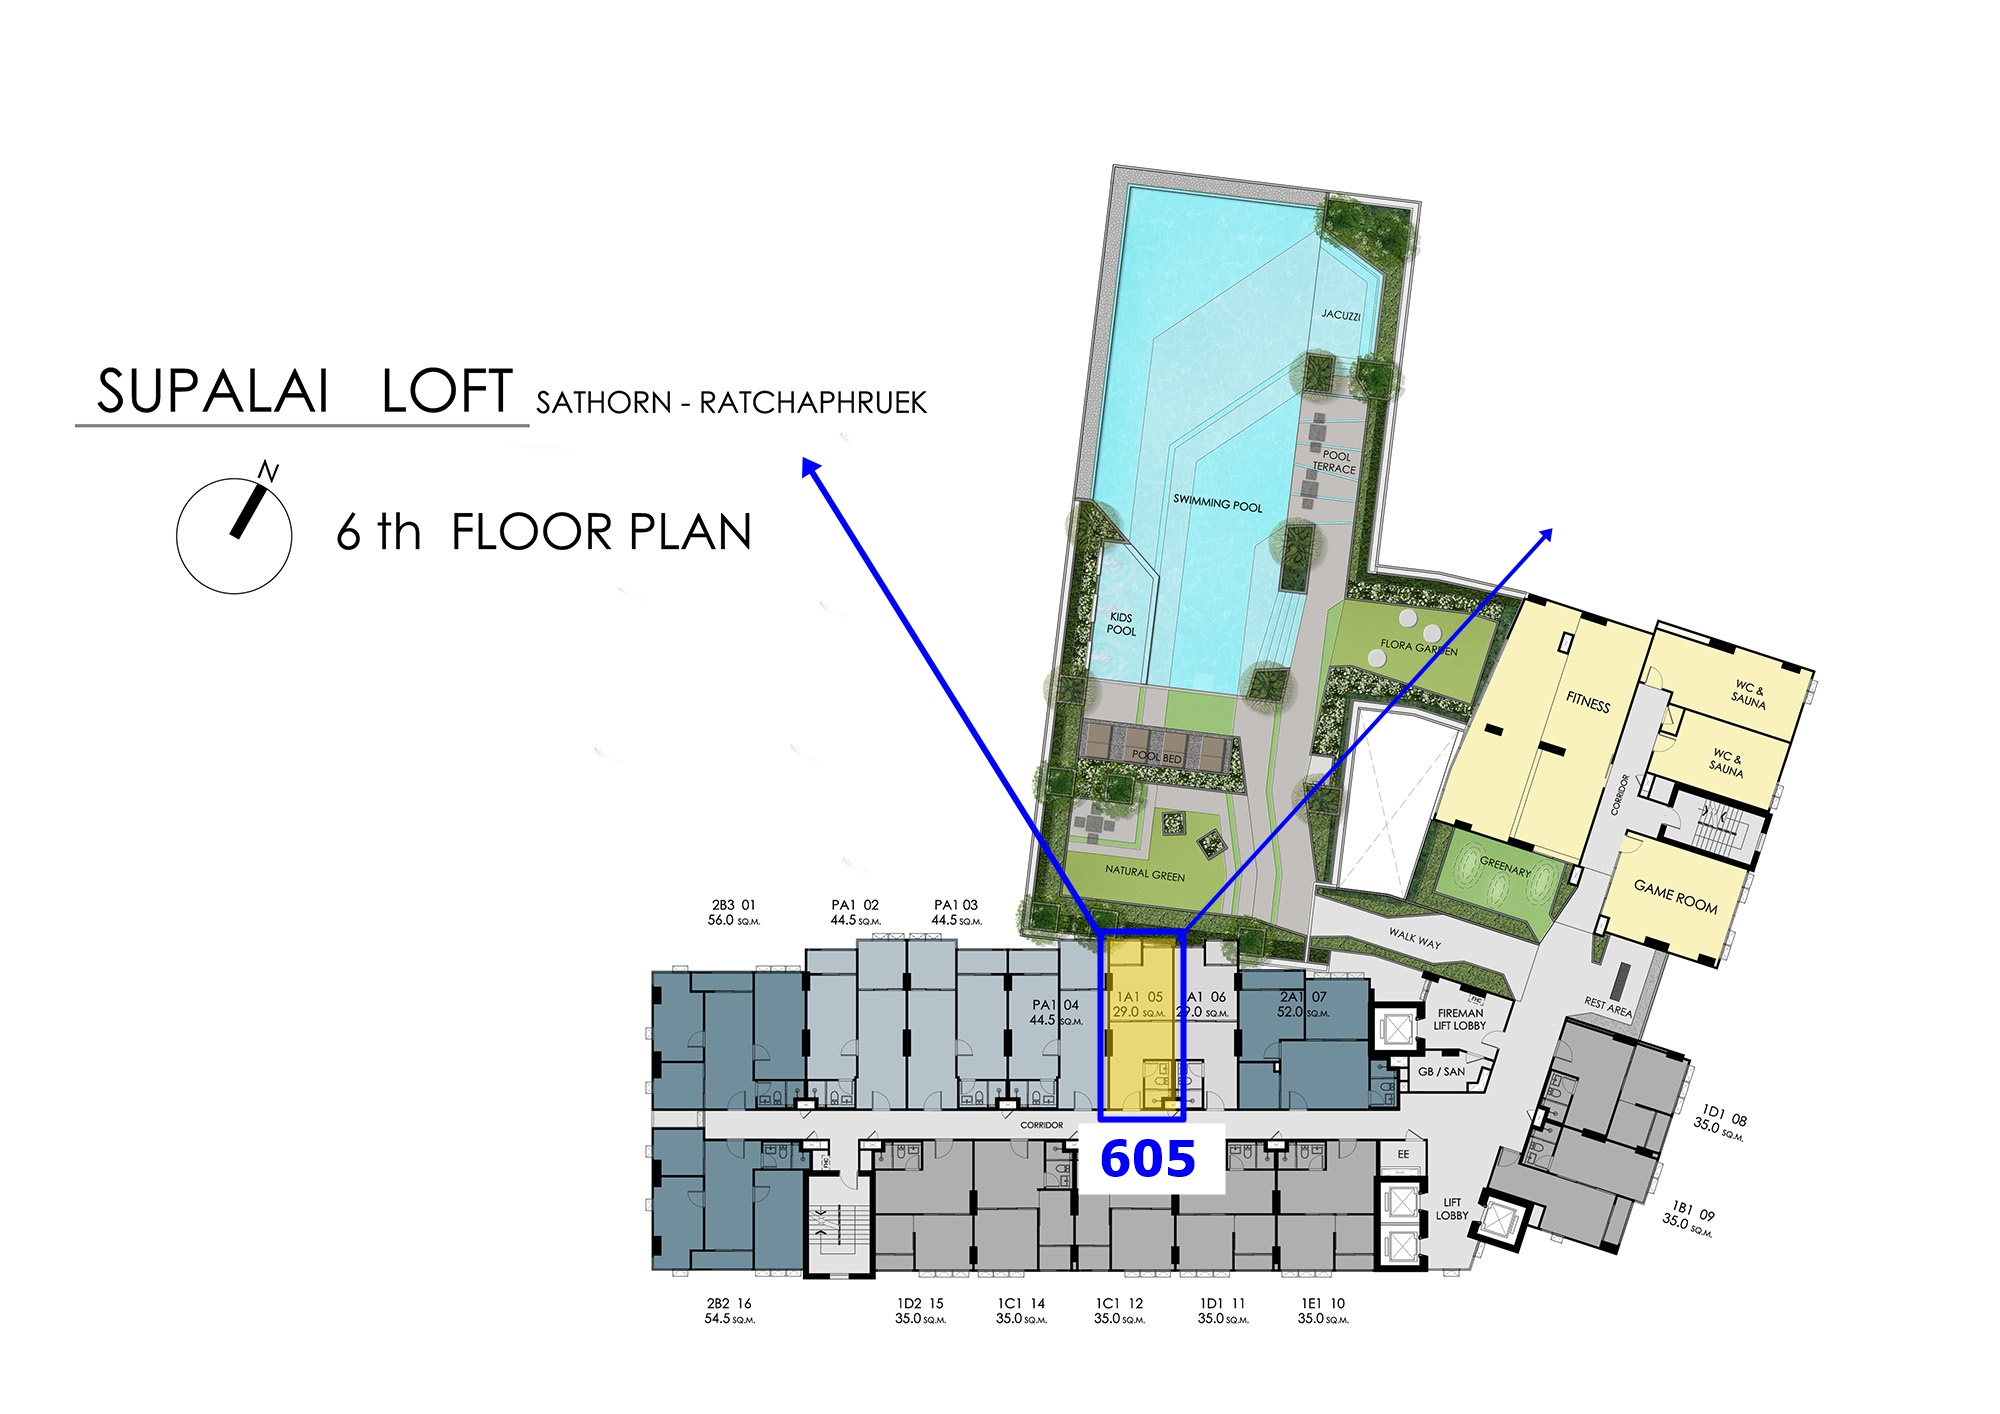 Sale DownCondoThaphra, Wutthakat : Sell down payment room 605 in the south, VVIP area, Supalai Loft Sathorn-Ratchapruek